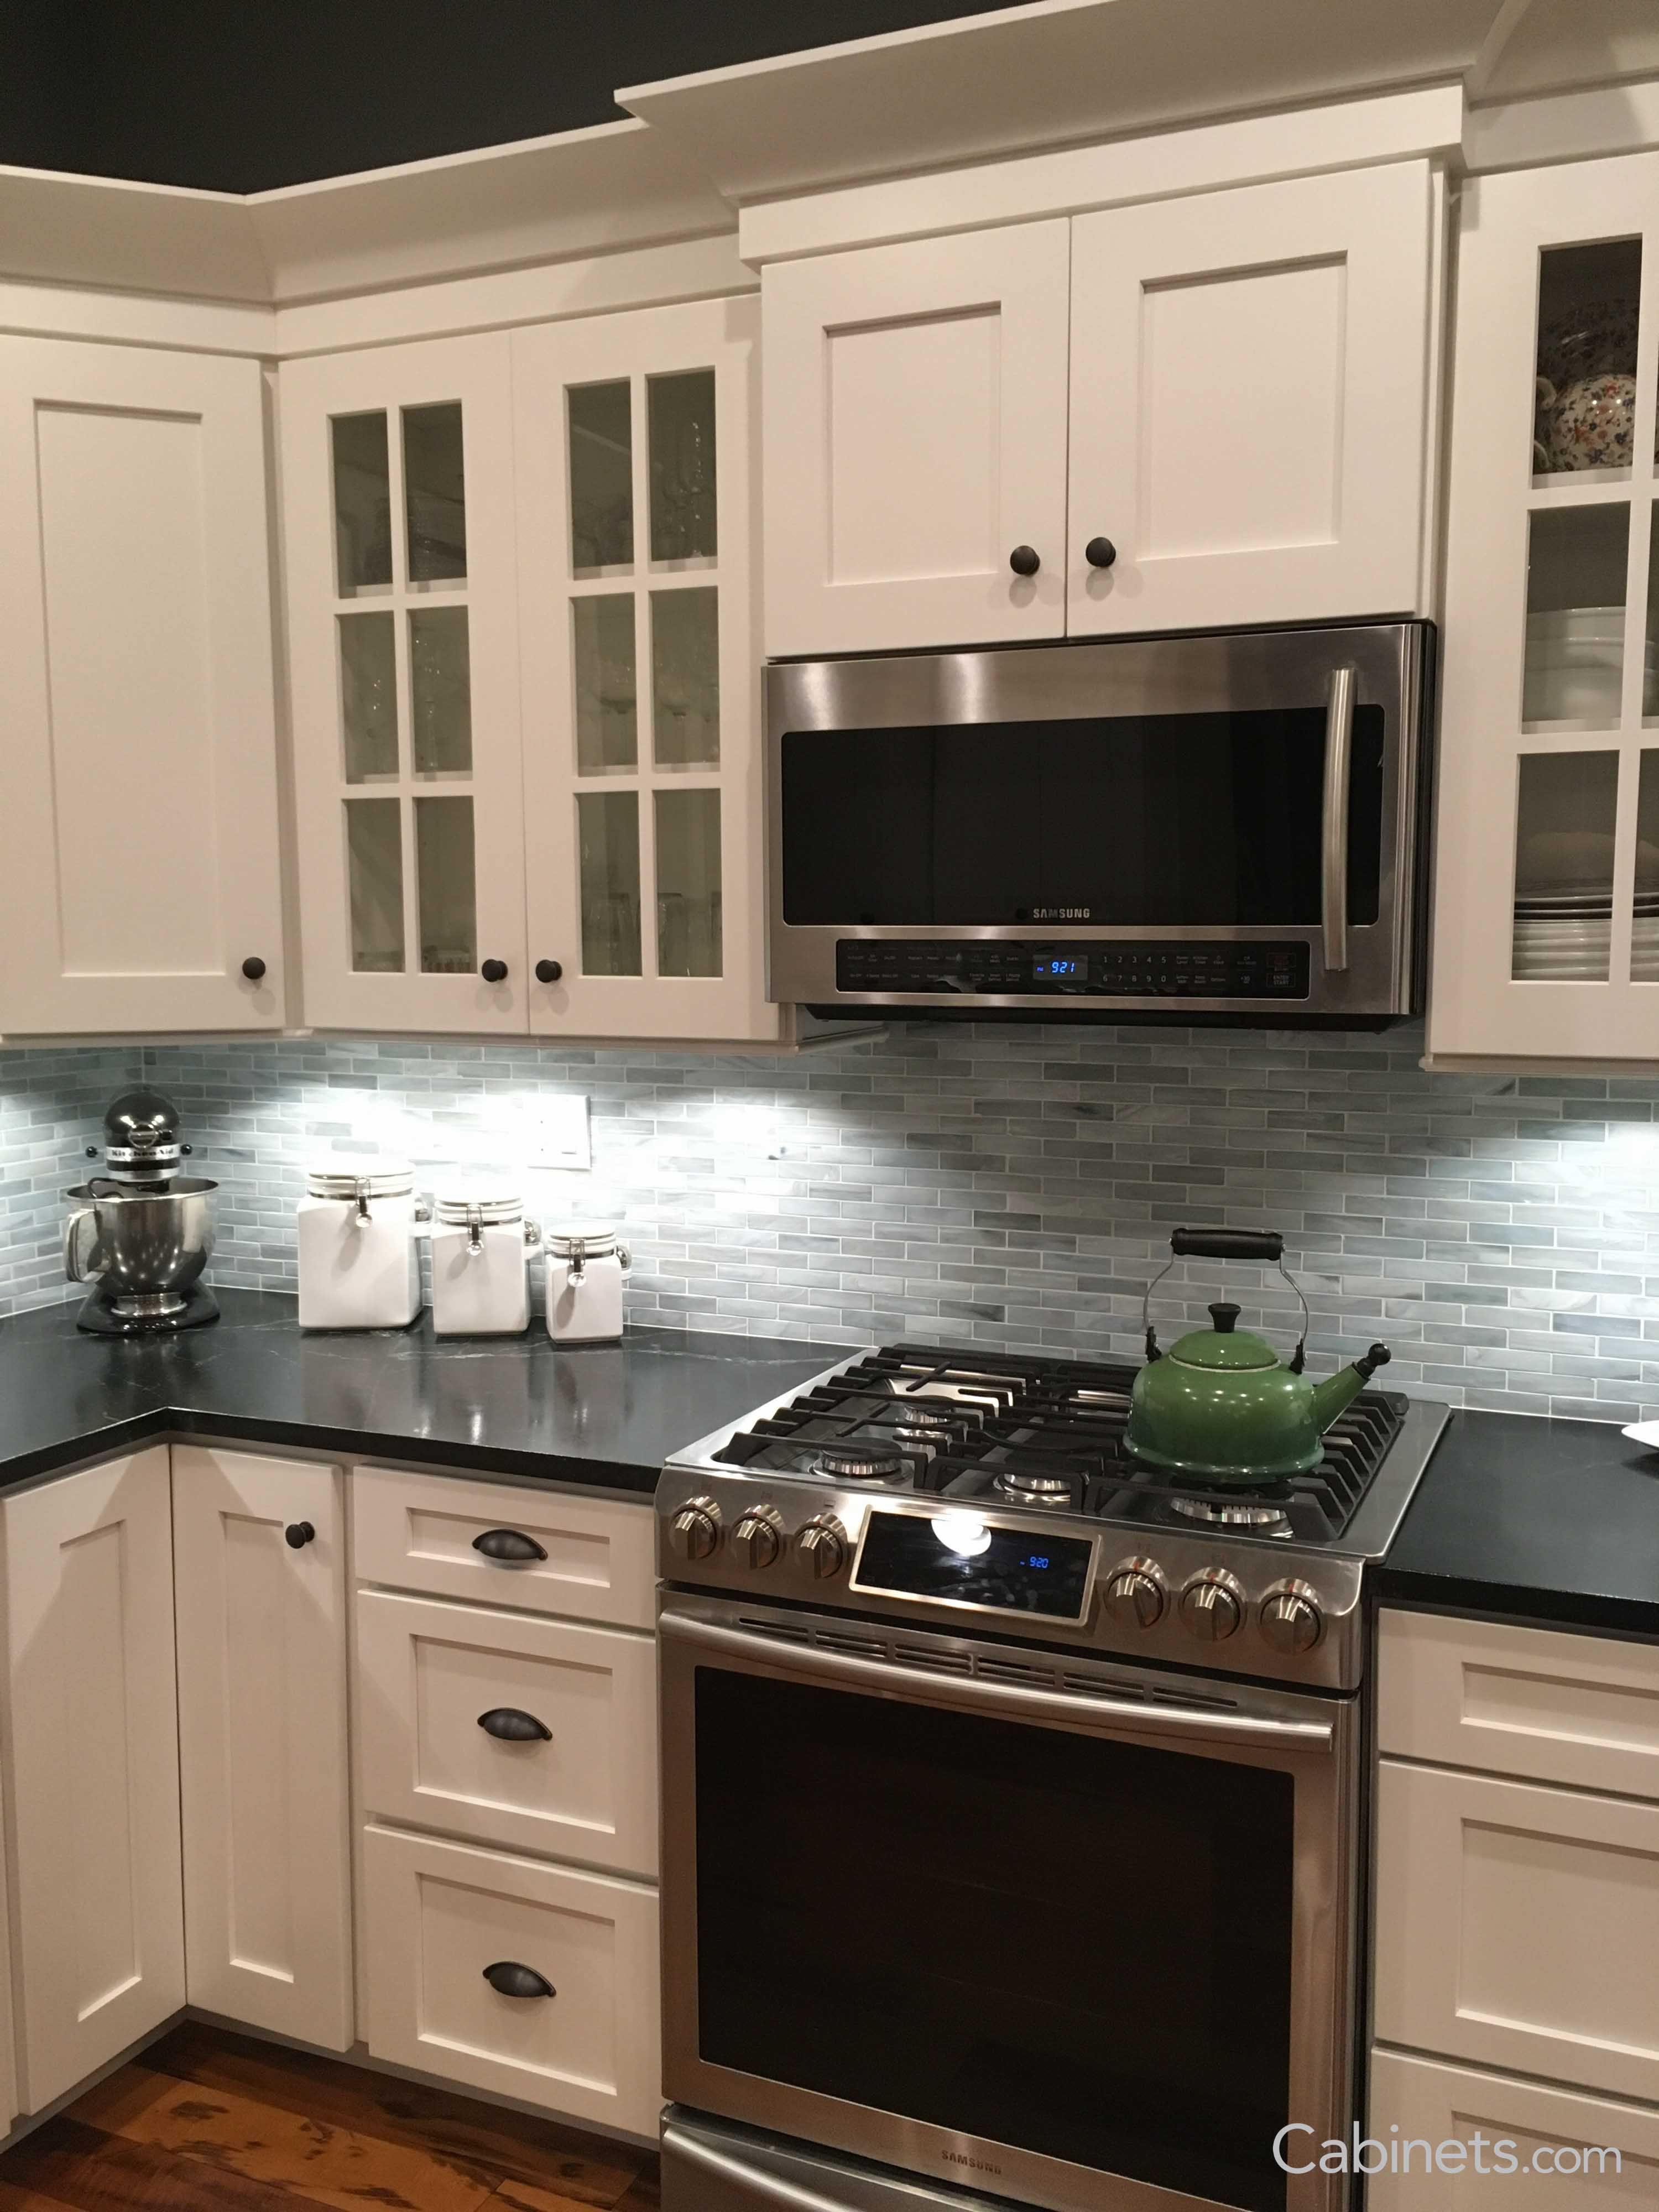 kitchen cabinets com memory foam mat costco the picture features shaker ii maple bright white are a timeless choice for your home